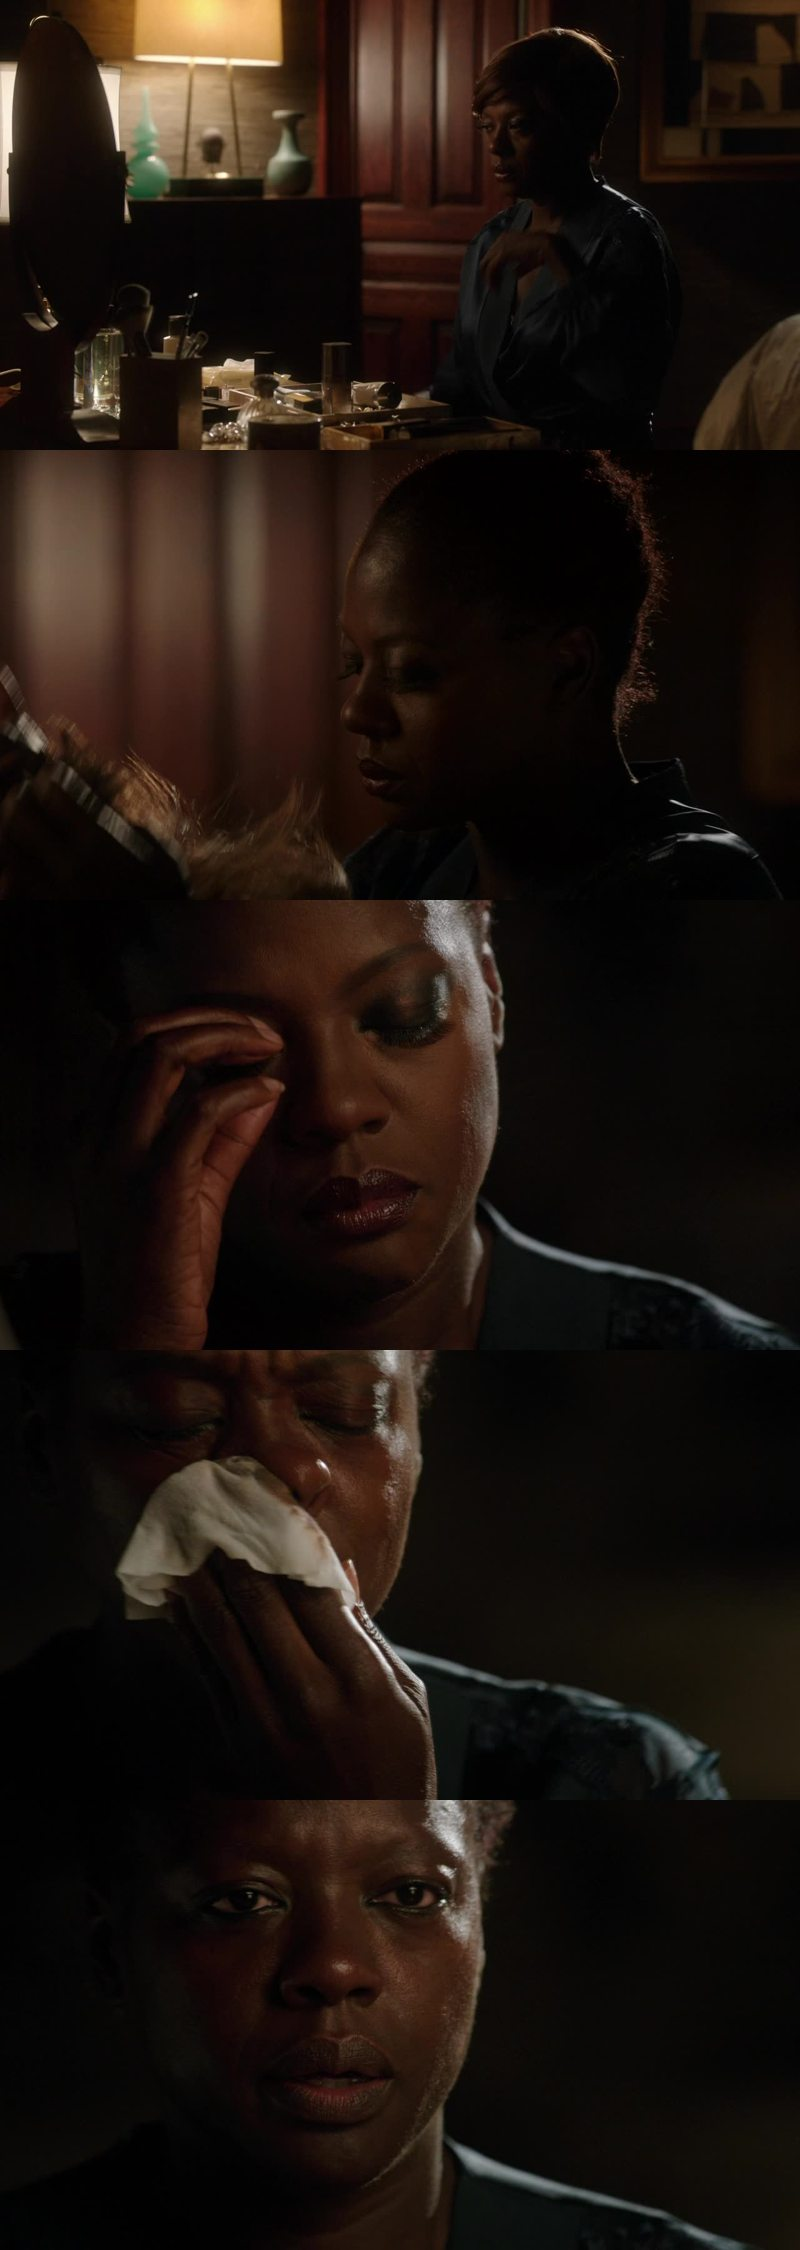 That moment was just the bestest of the entire episode. For the first time I saw the real Annalise Keaton.   Let me just say that it was something.